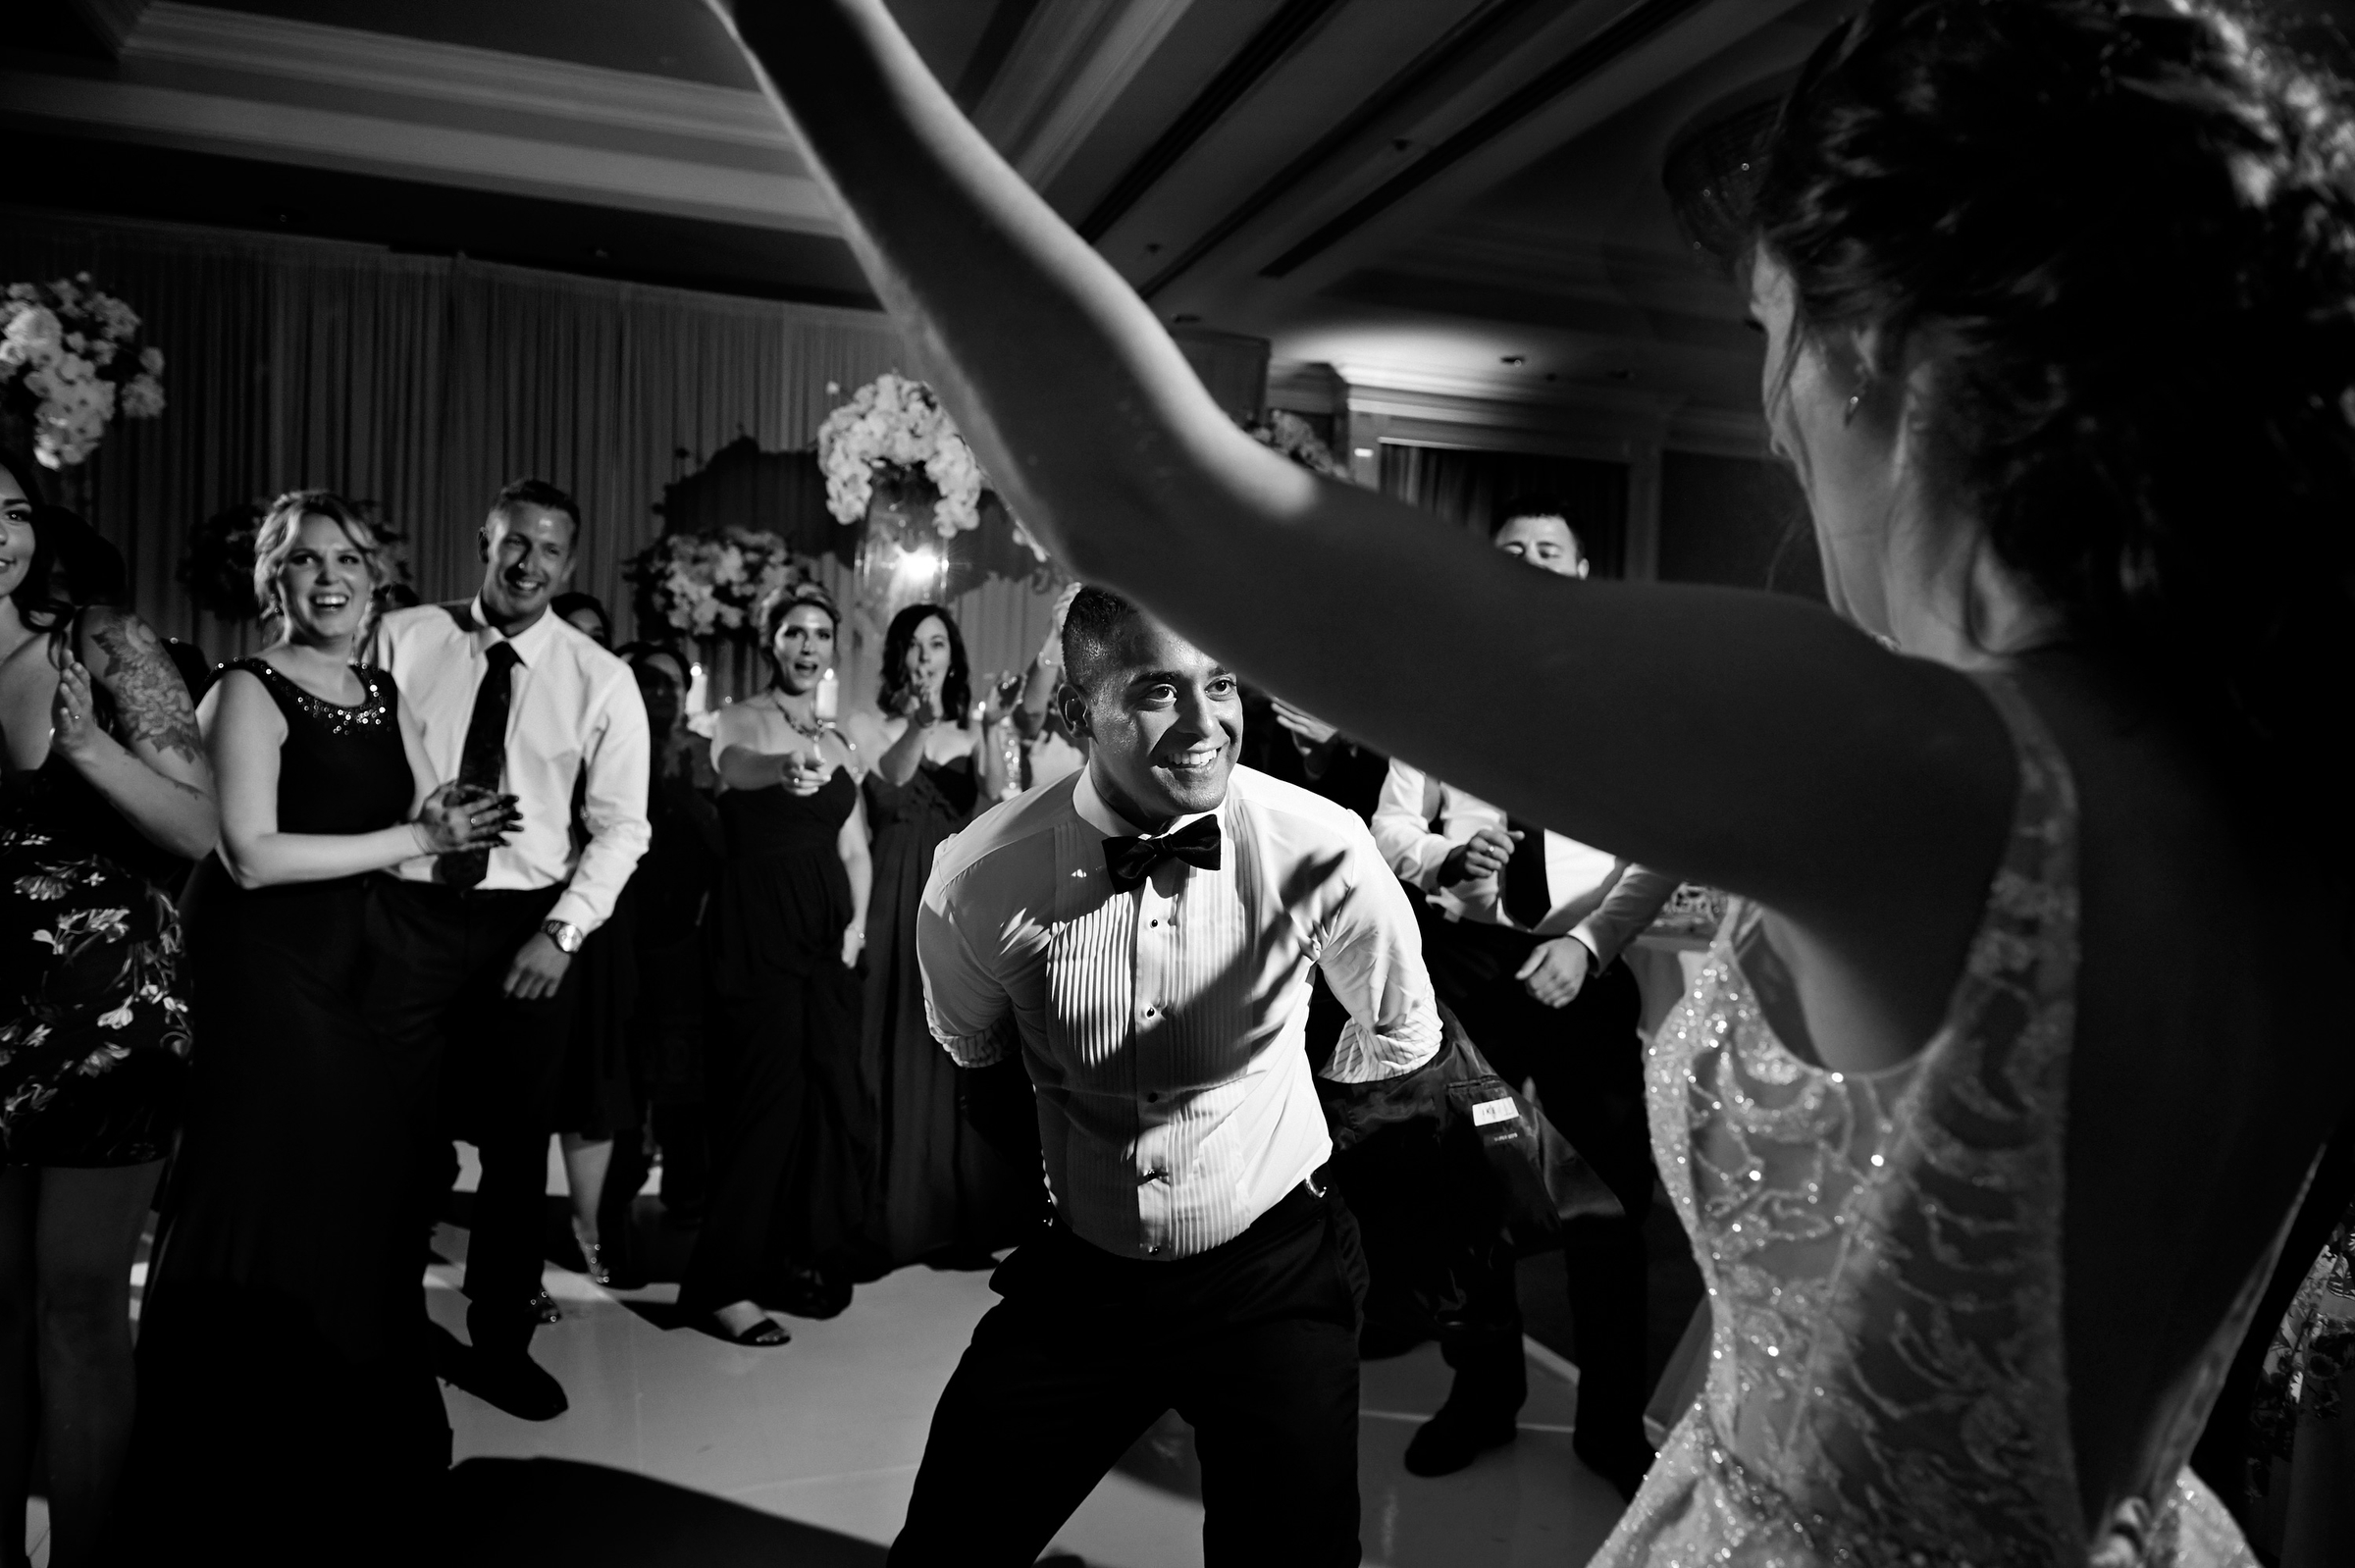 Dancing with the bride - photo by Jozef Povazan Photography